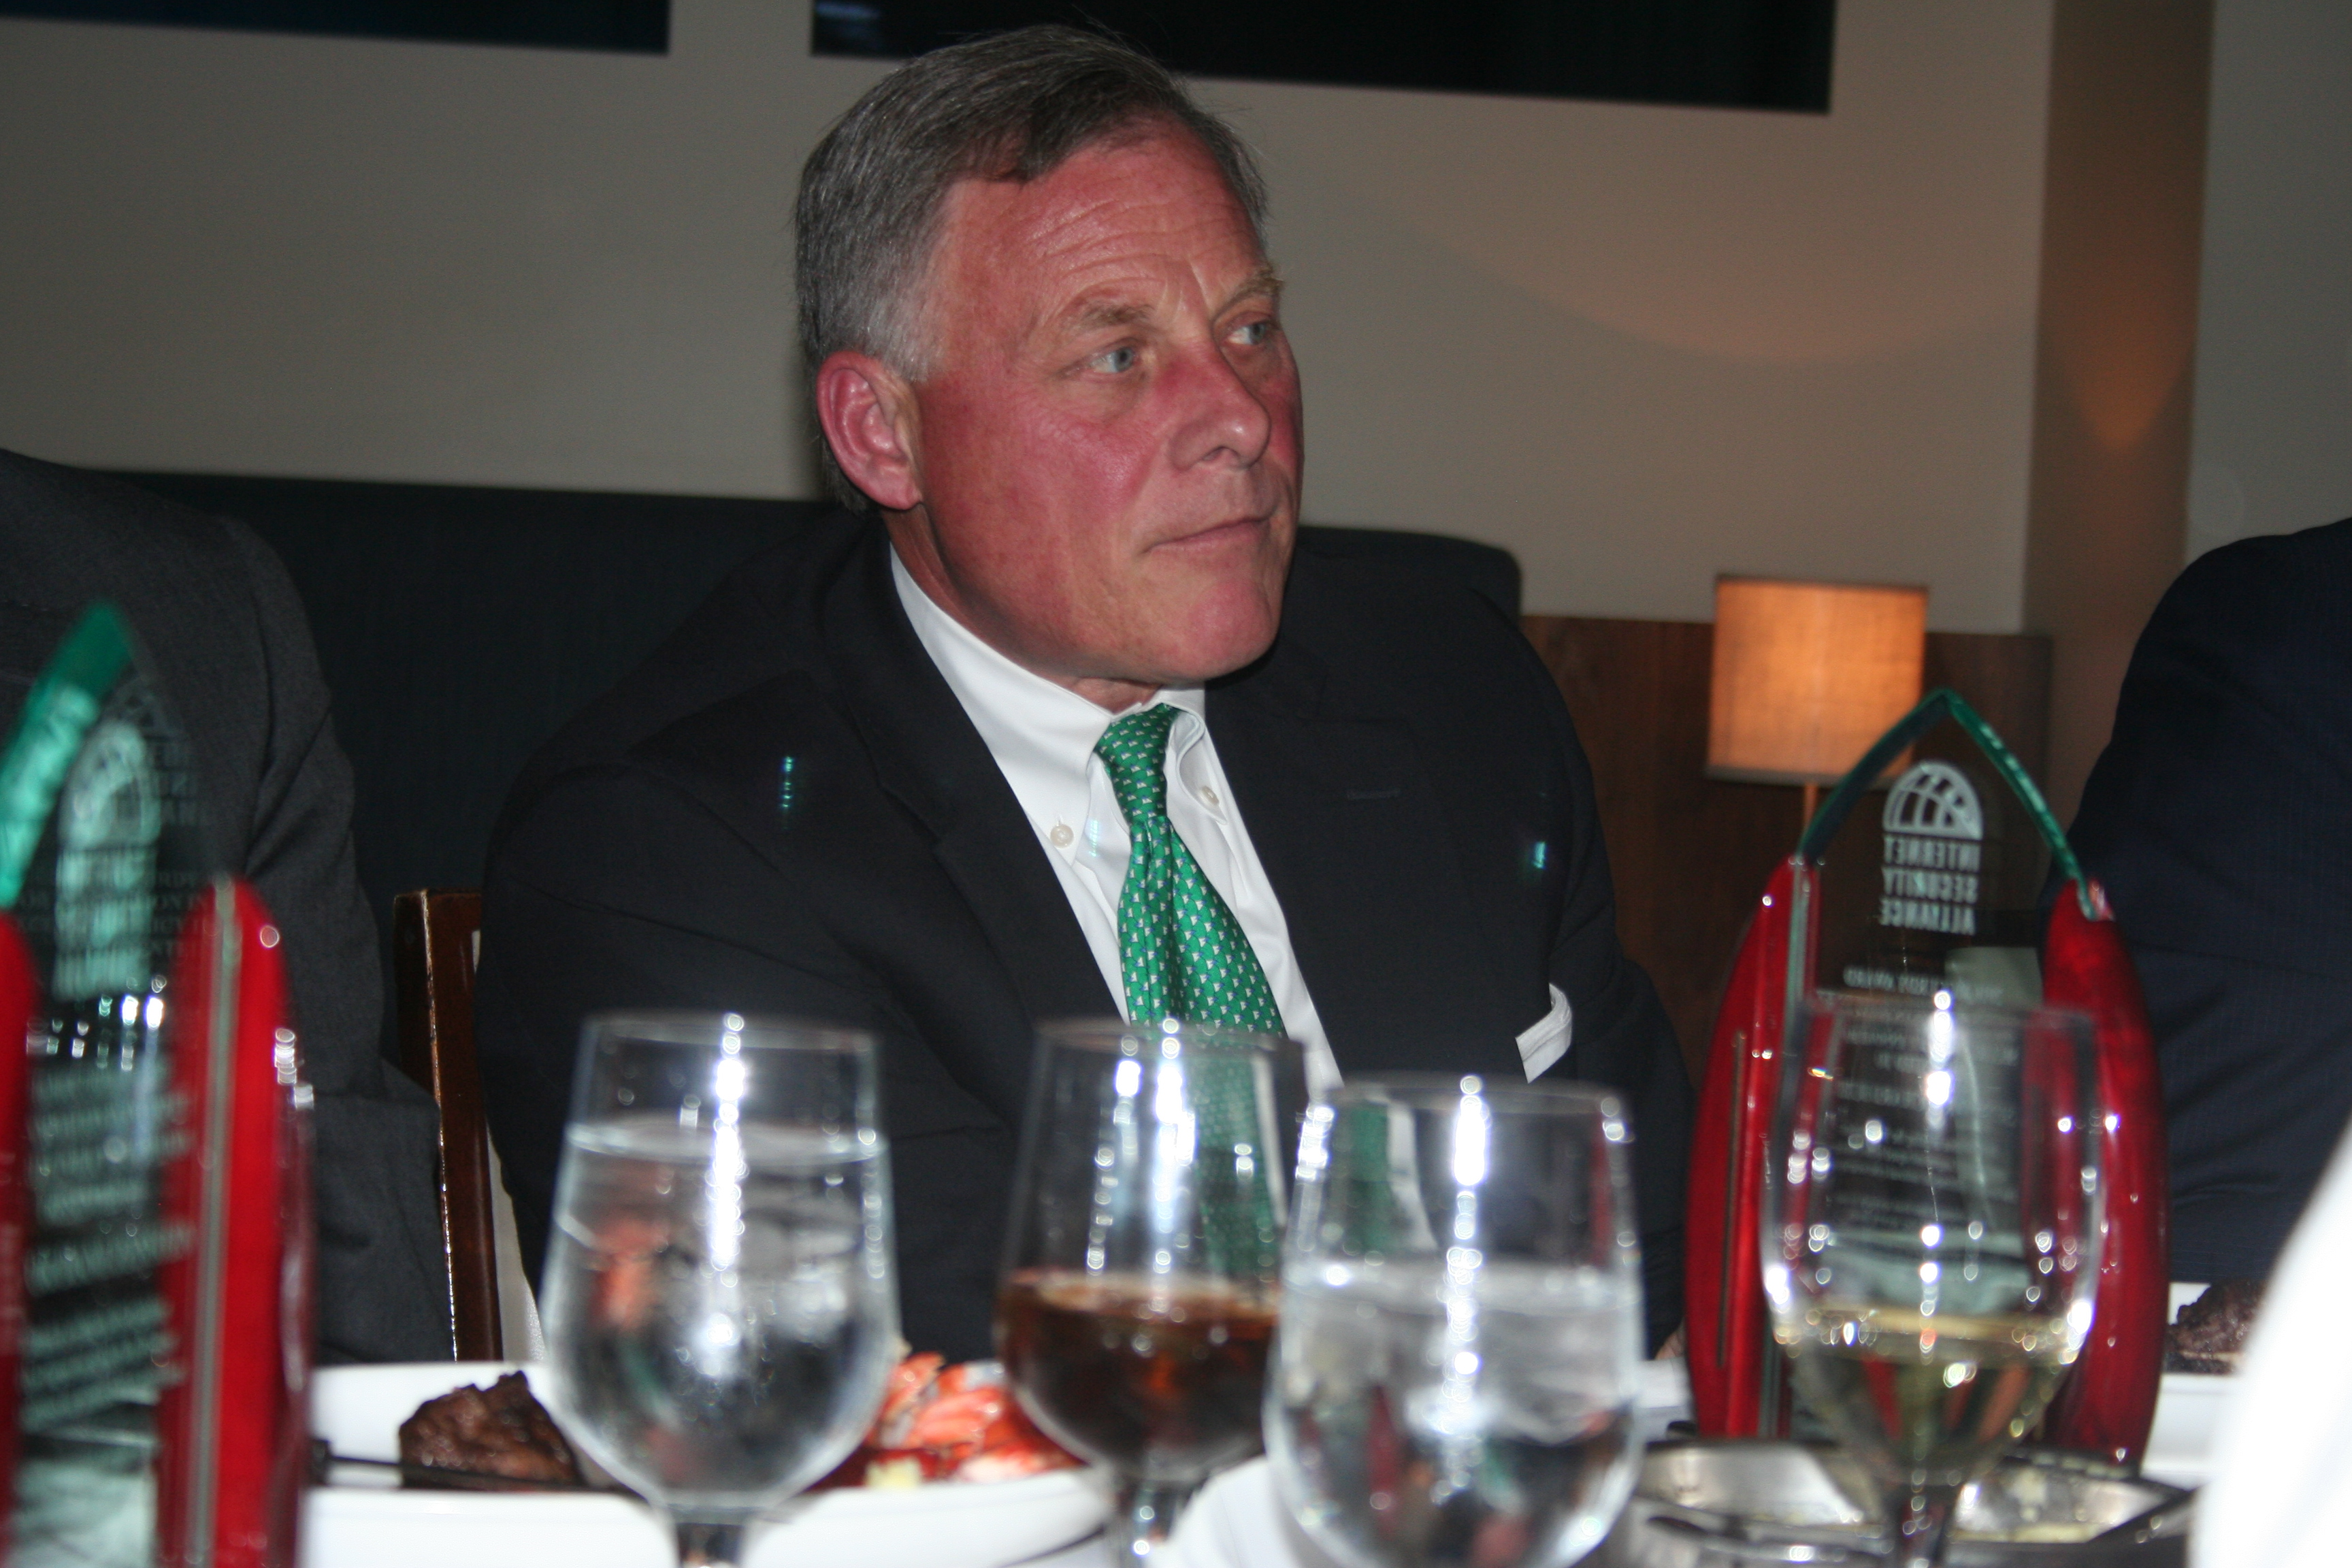 Sen. Richard Burr, chairman of the Senate Intelligence Committee, during the spring 2016 Salon Dinner.